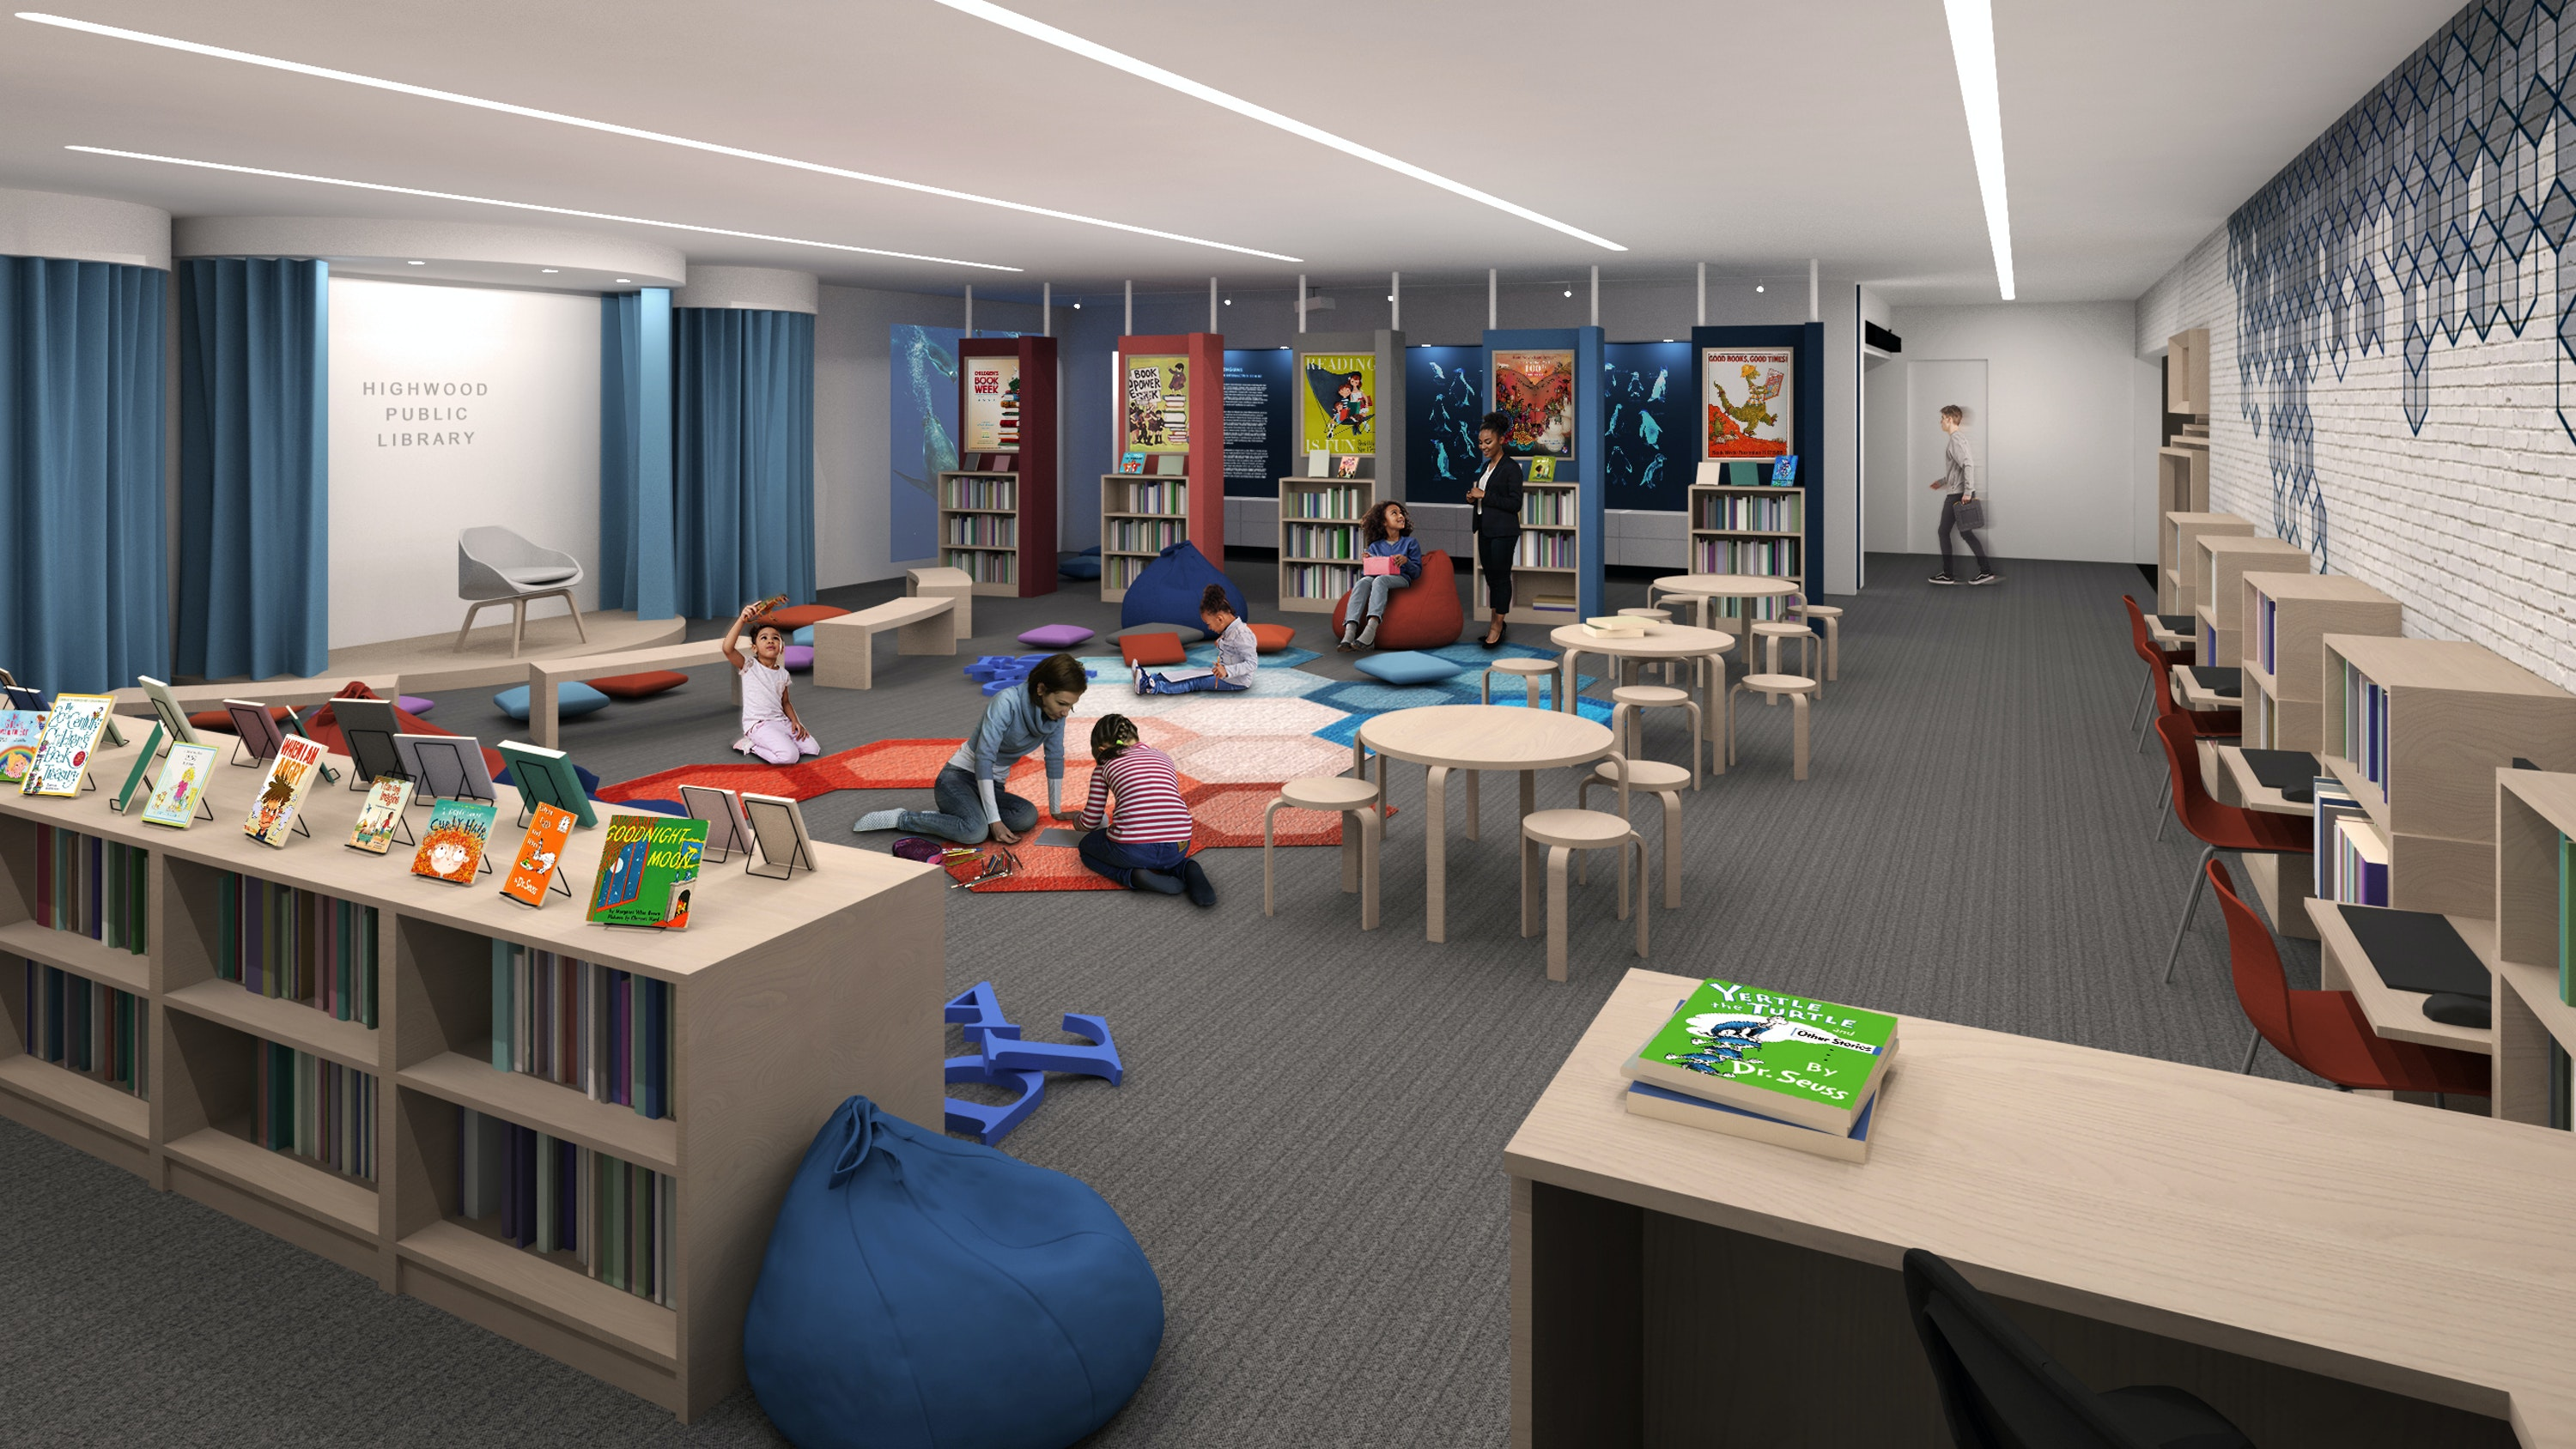 Highwood Public Library Krueck Sexton Childrens Area Perspective